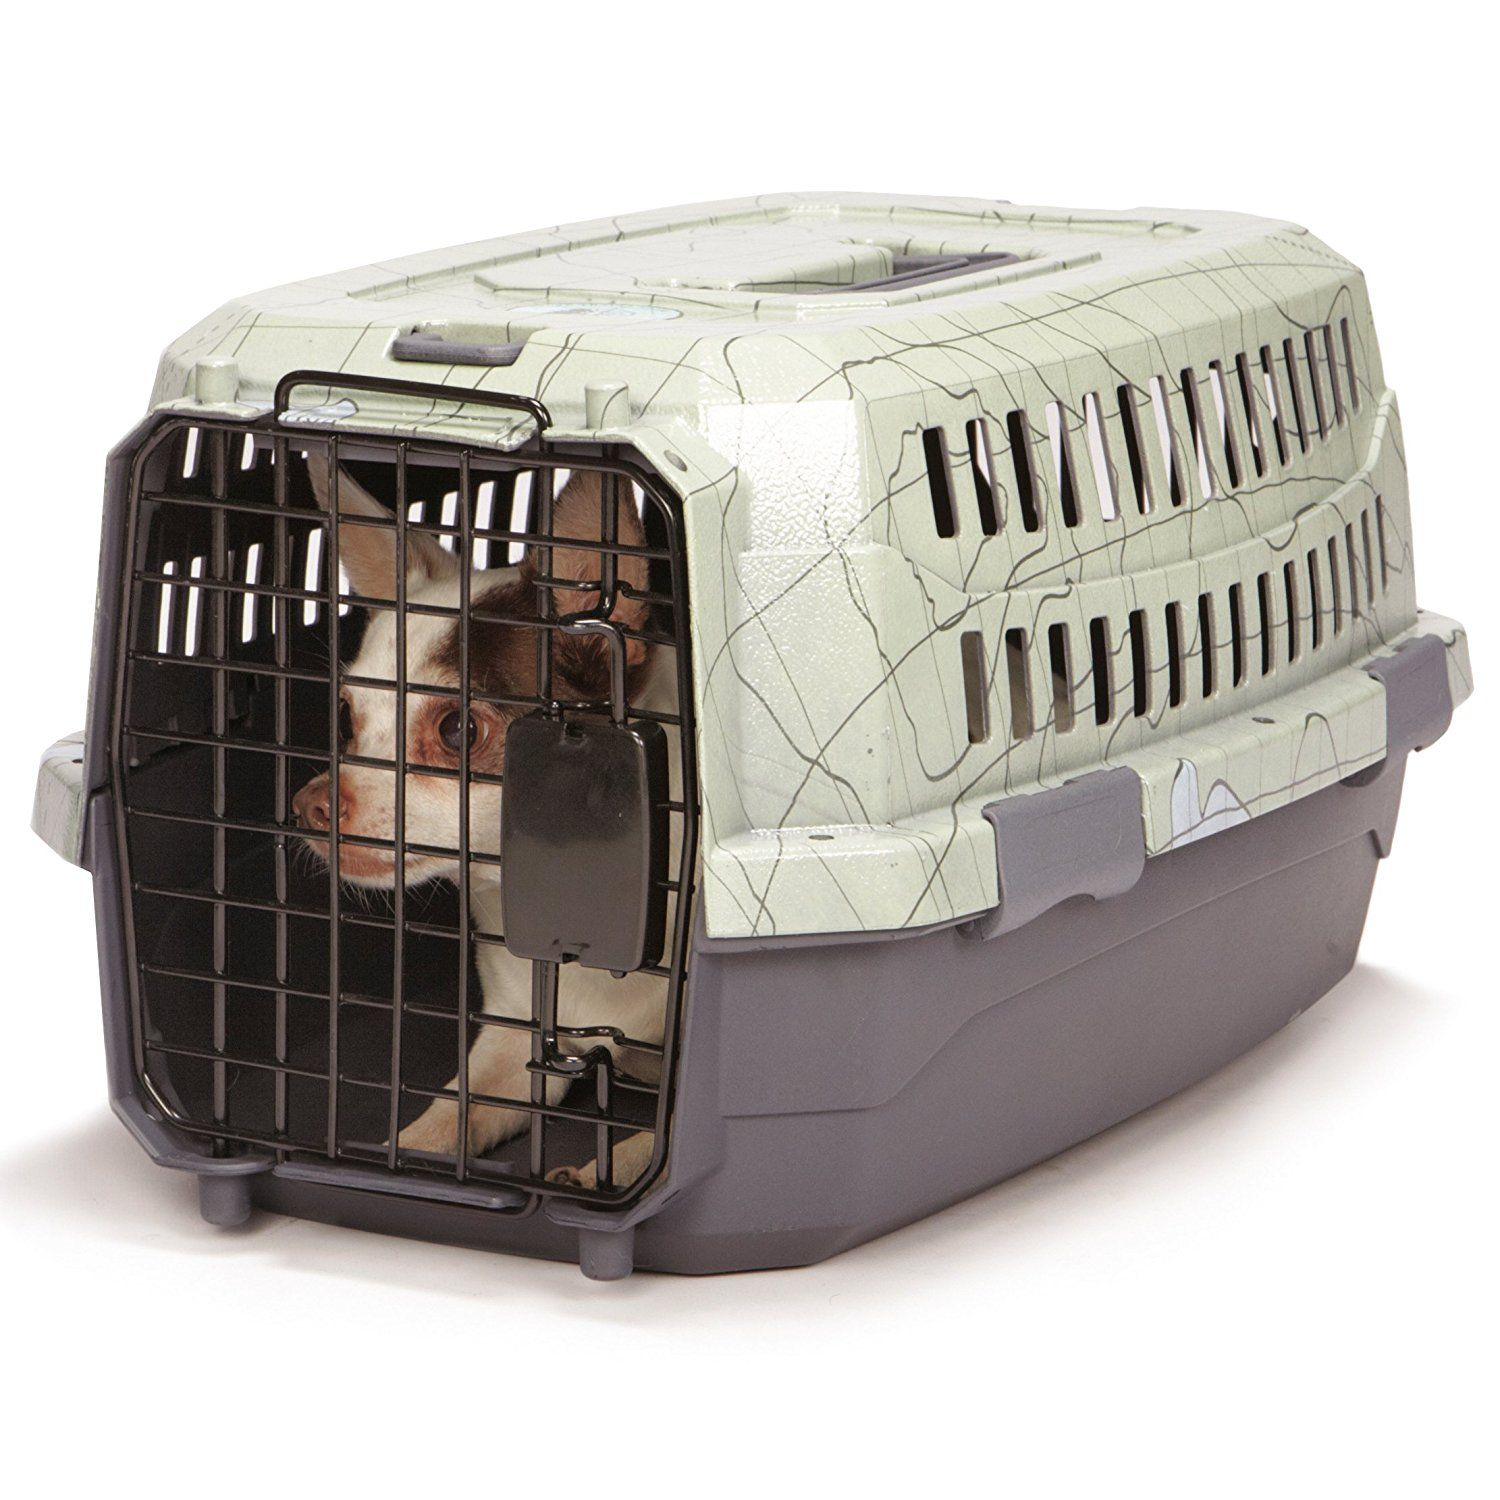 Dog Is Good Additional Details At The Pin Image Click It This Is An Amazon Affiliate Link I May Earn Commissi Dog Crate Small Dog Crate Dog Travel Crate